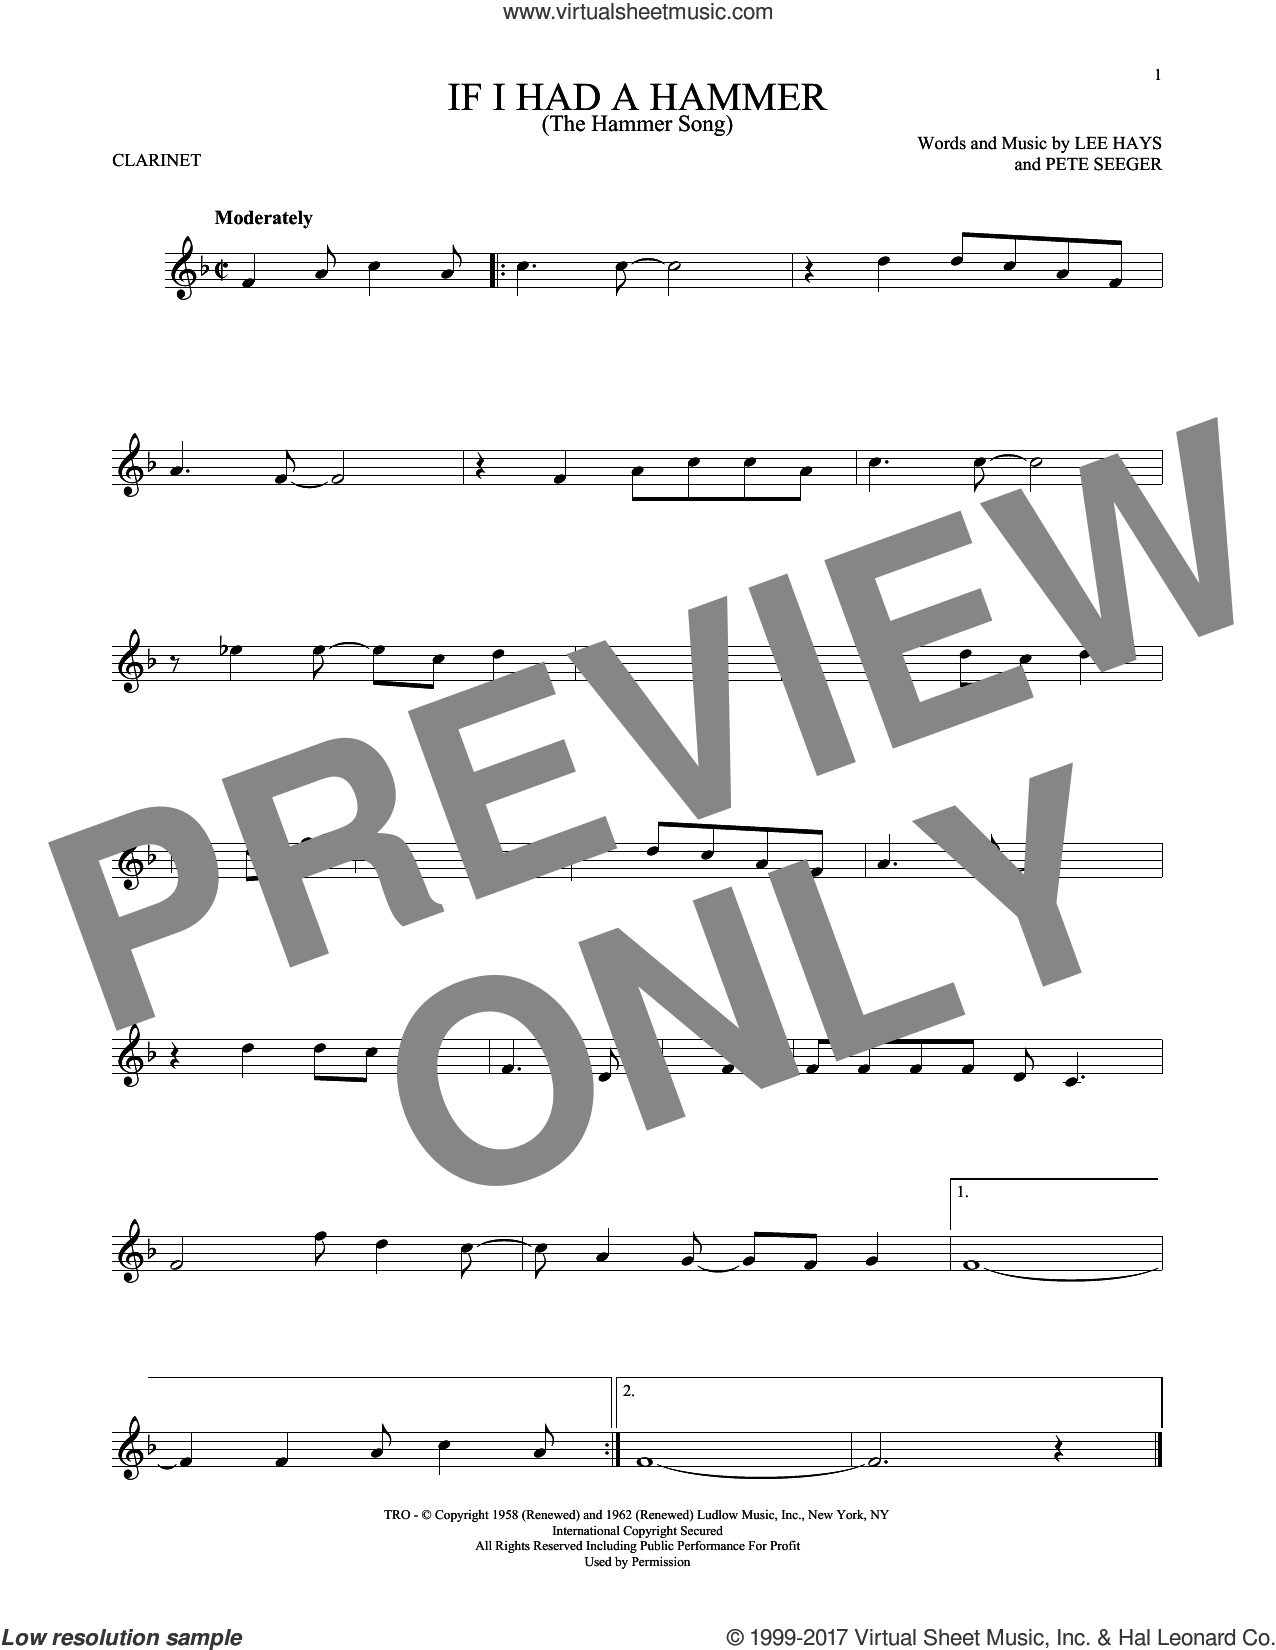 If I Had A Hammer (The Hammer Song) sheet music for clarinet solo by Peter, Paul & Mary, Lee Hays and Pete Seeger, intermediate skill level